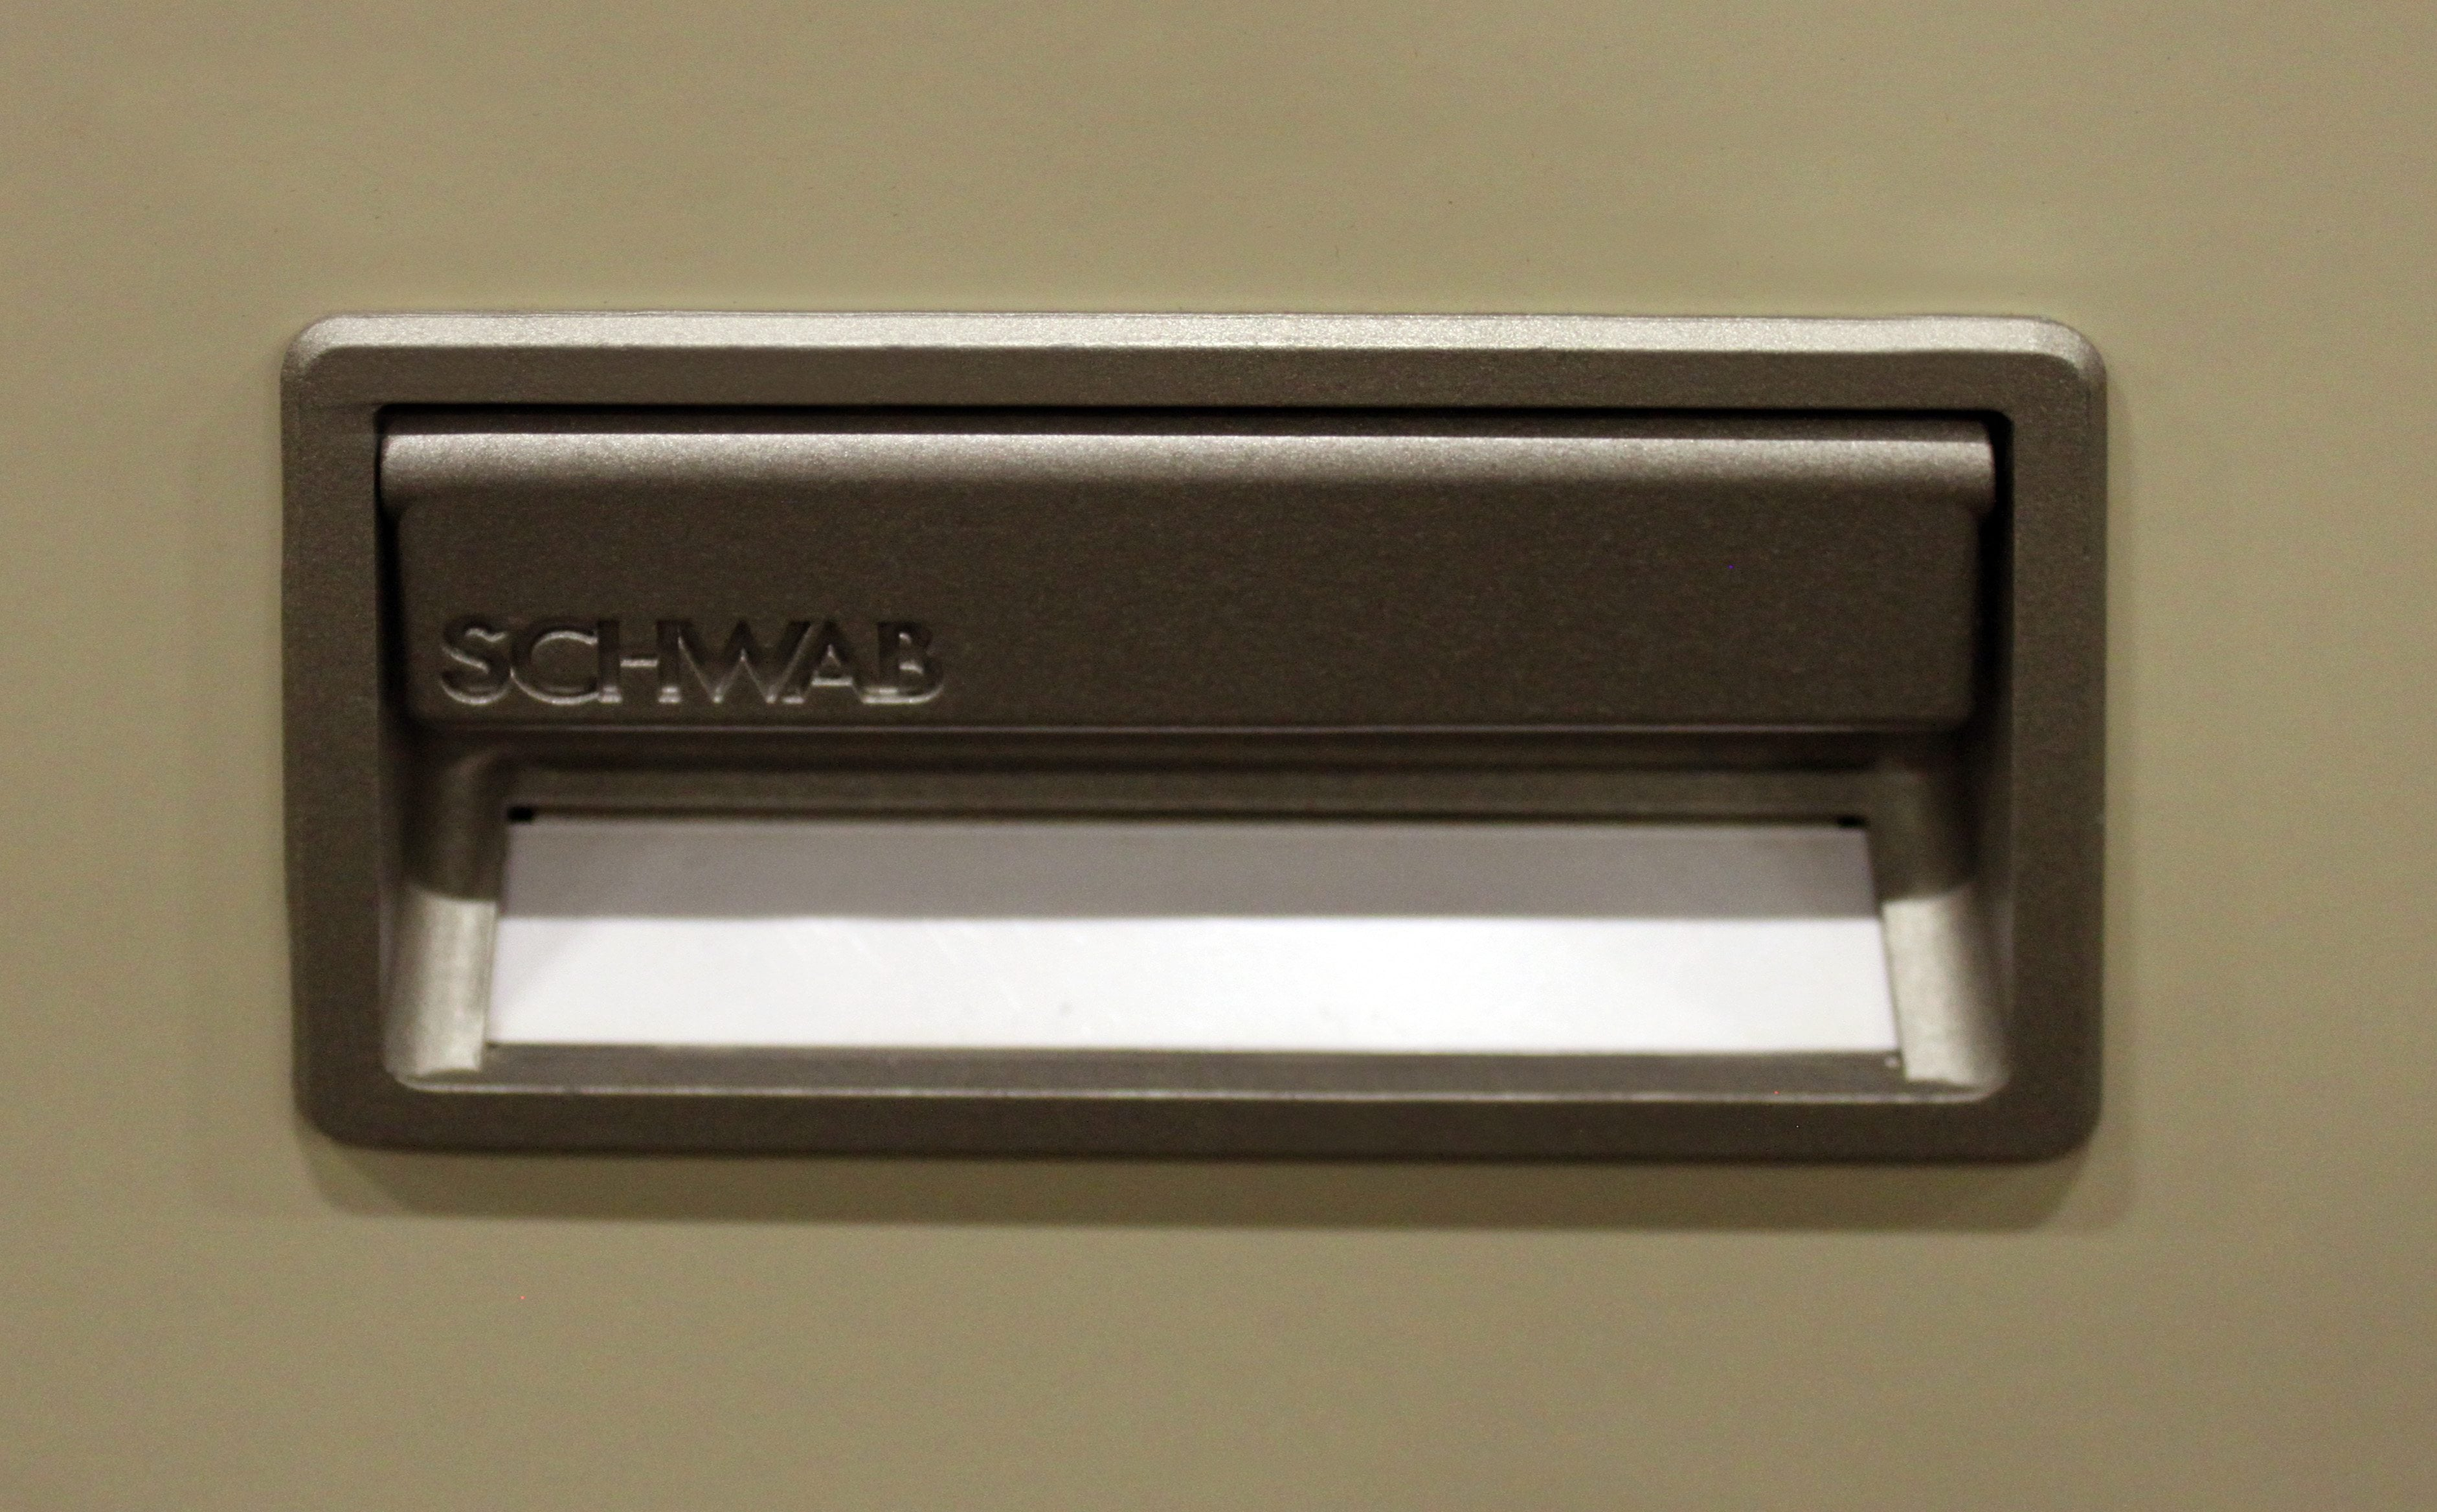 trident shaped letter schwab 5000 trident used putty letter sized file 25318 | IMG 0664